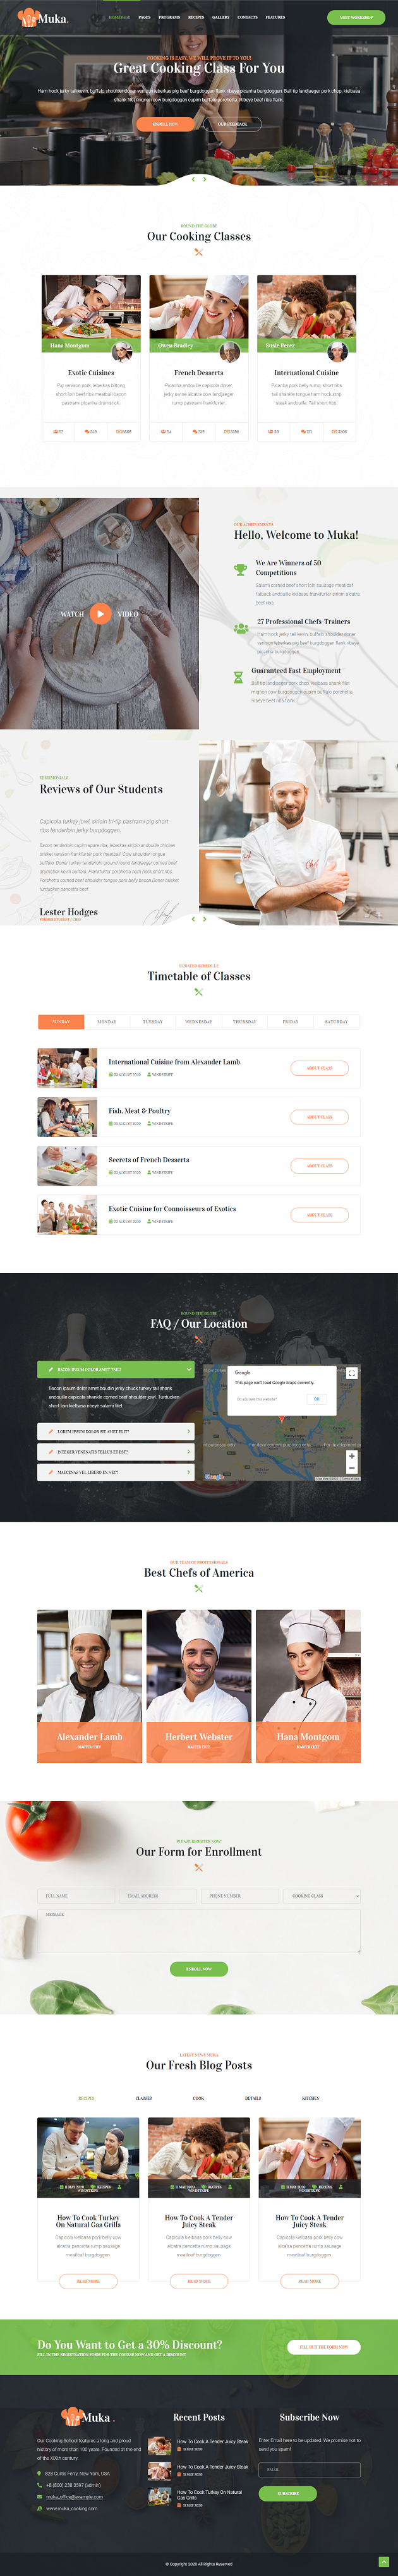 Muka - Bakery and Cooking Classes Joomla Template - 2